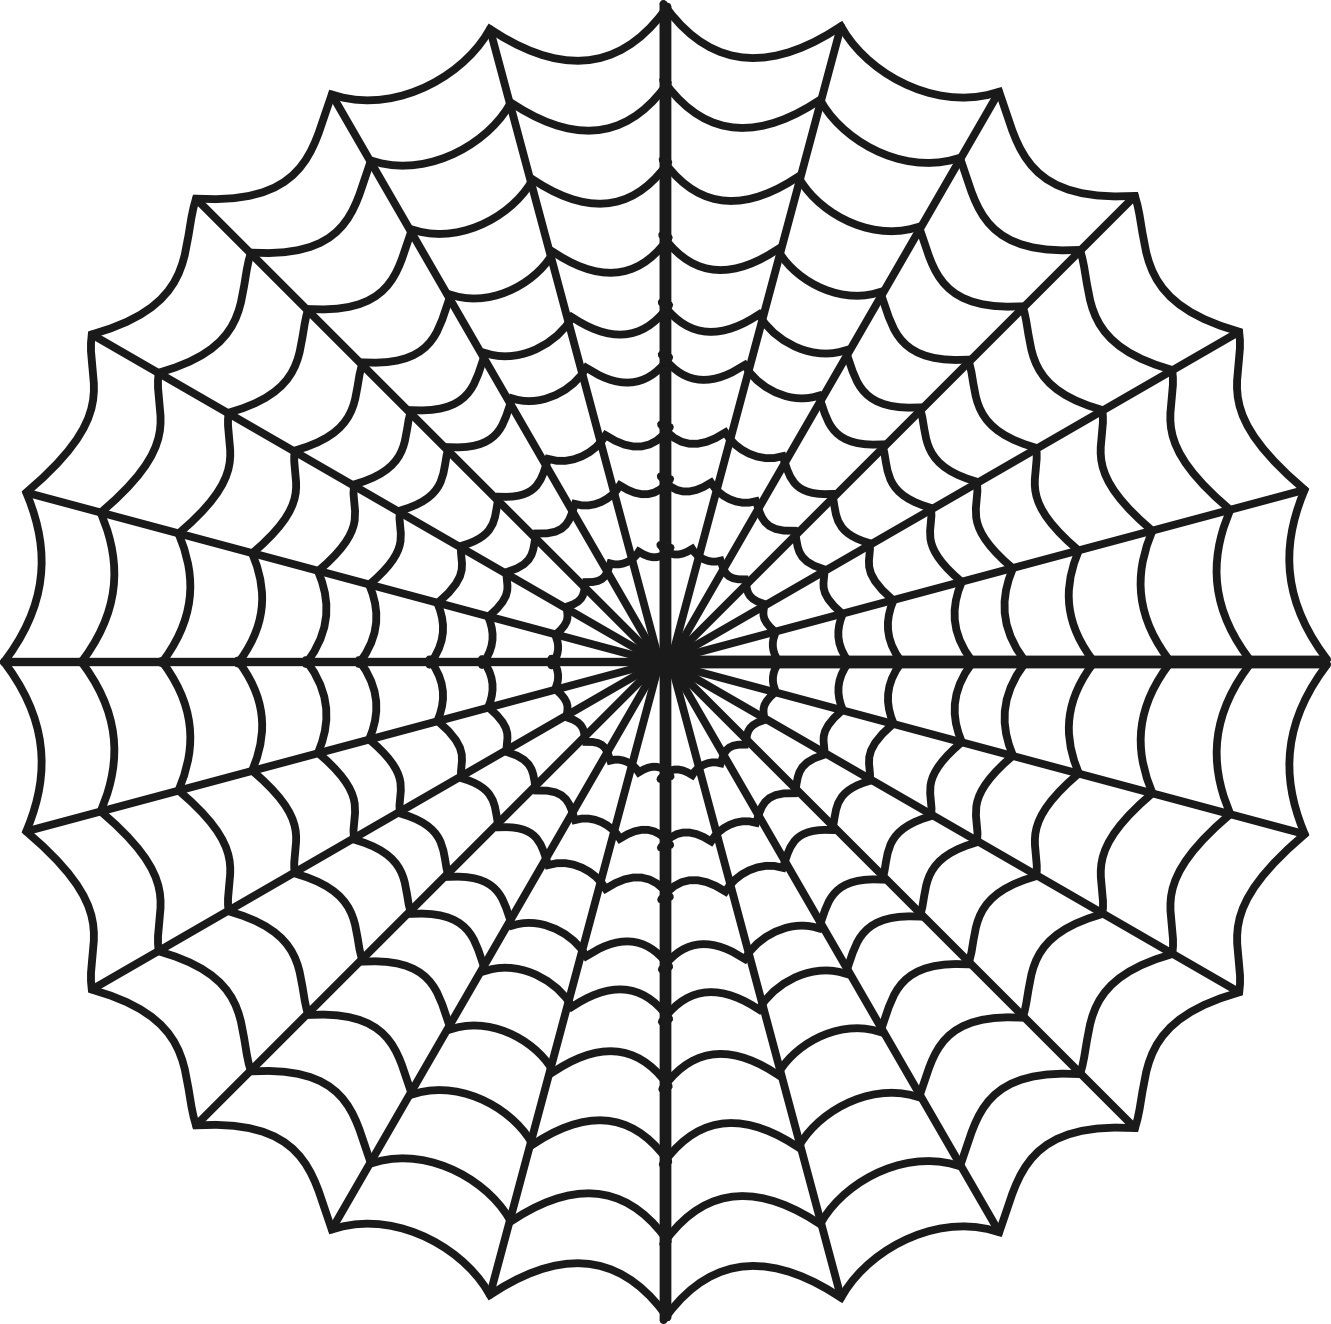 spider web coloring page # 0